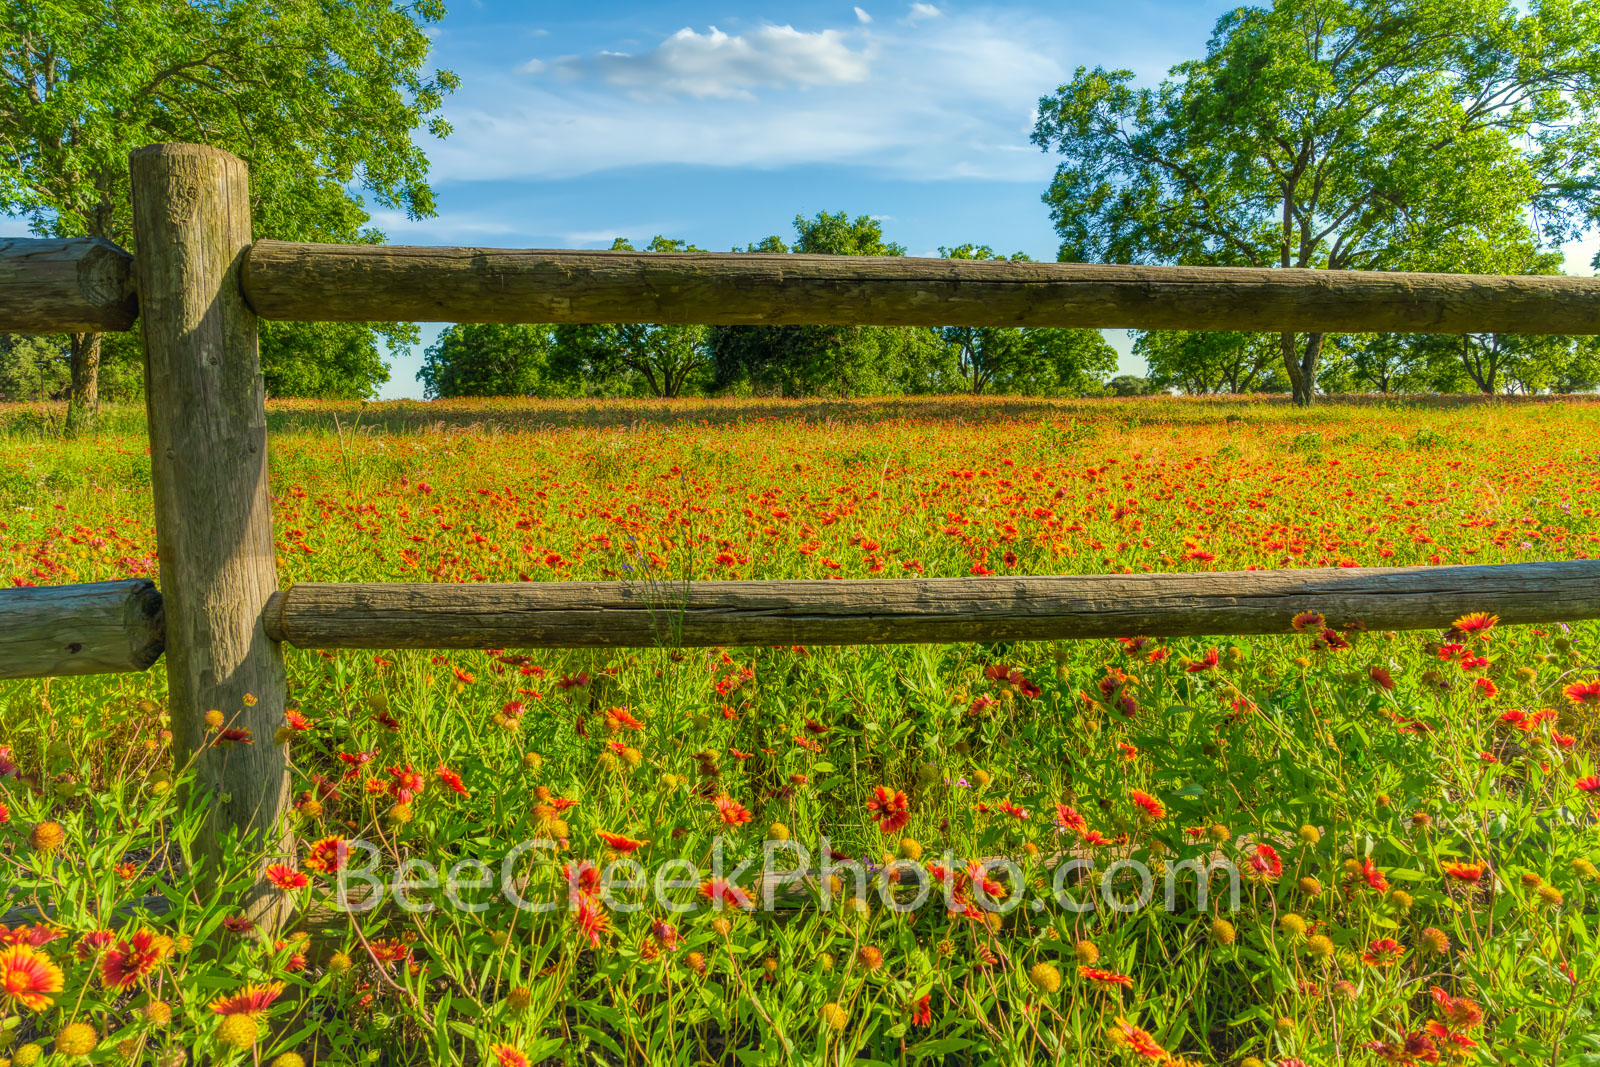 Wildflowers at the Fence - A field of Texas wildflowers along a fence in the hill country. The Texas hill country has some of...